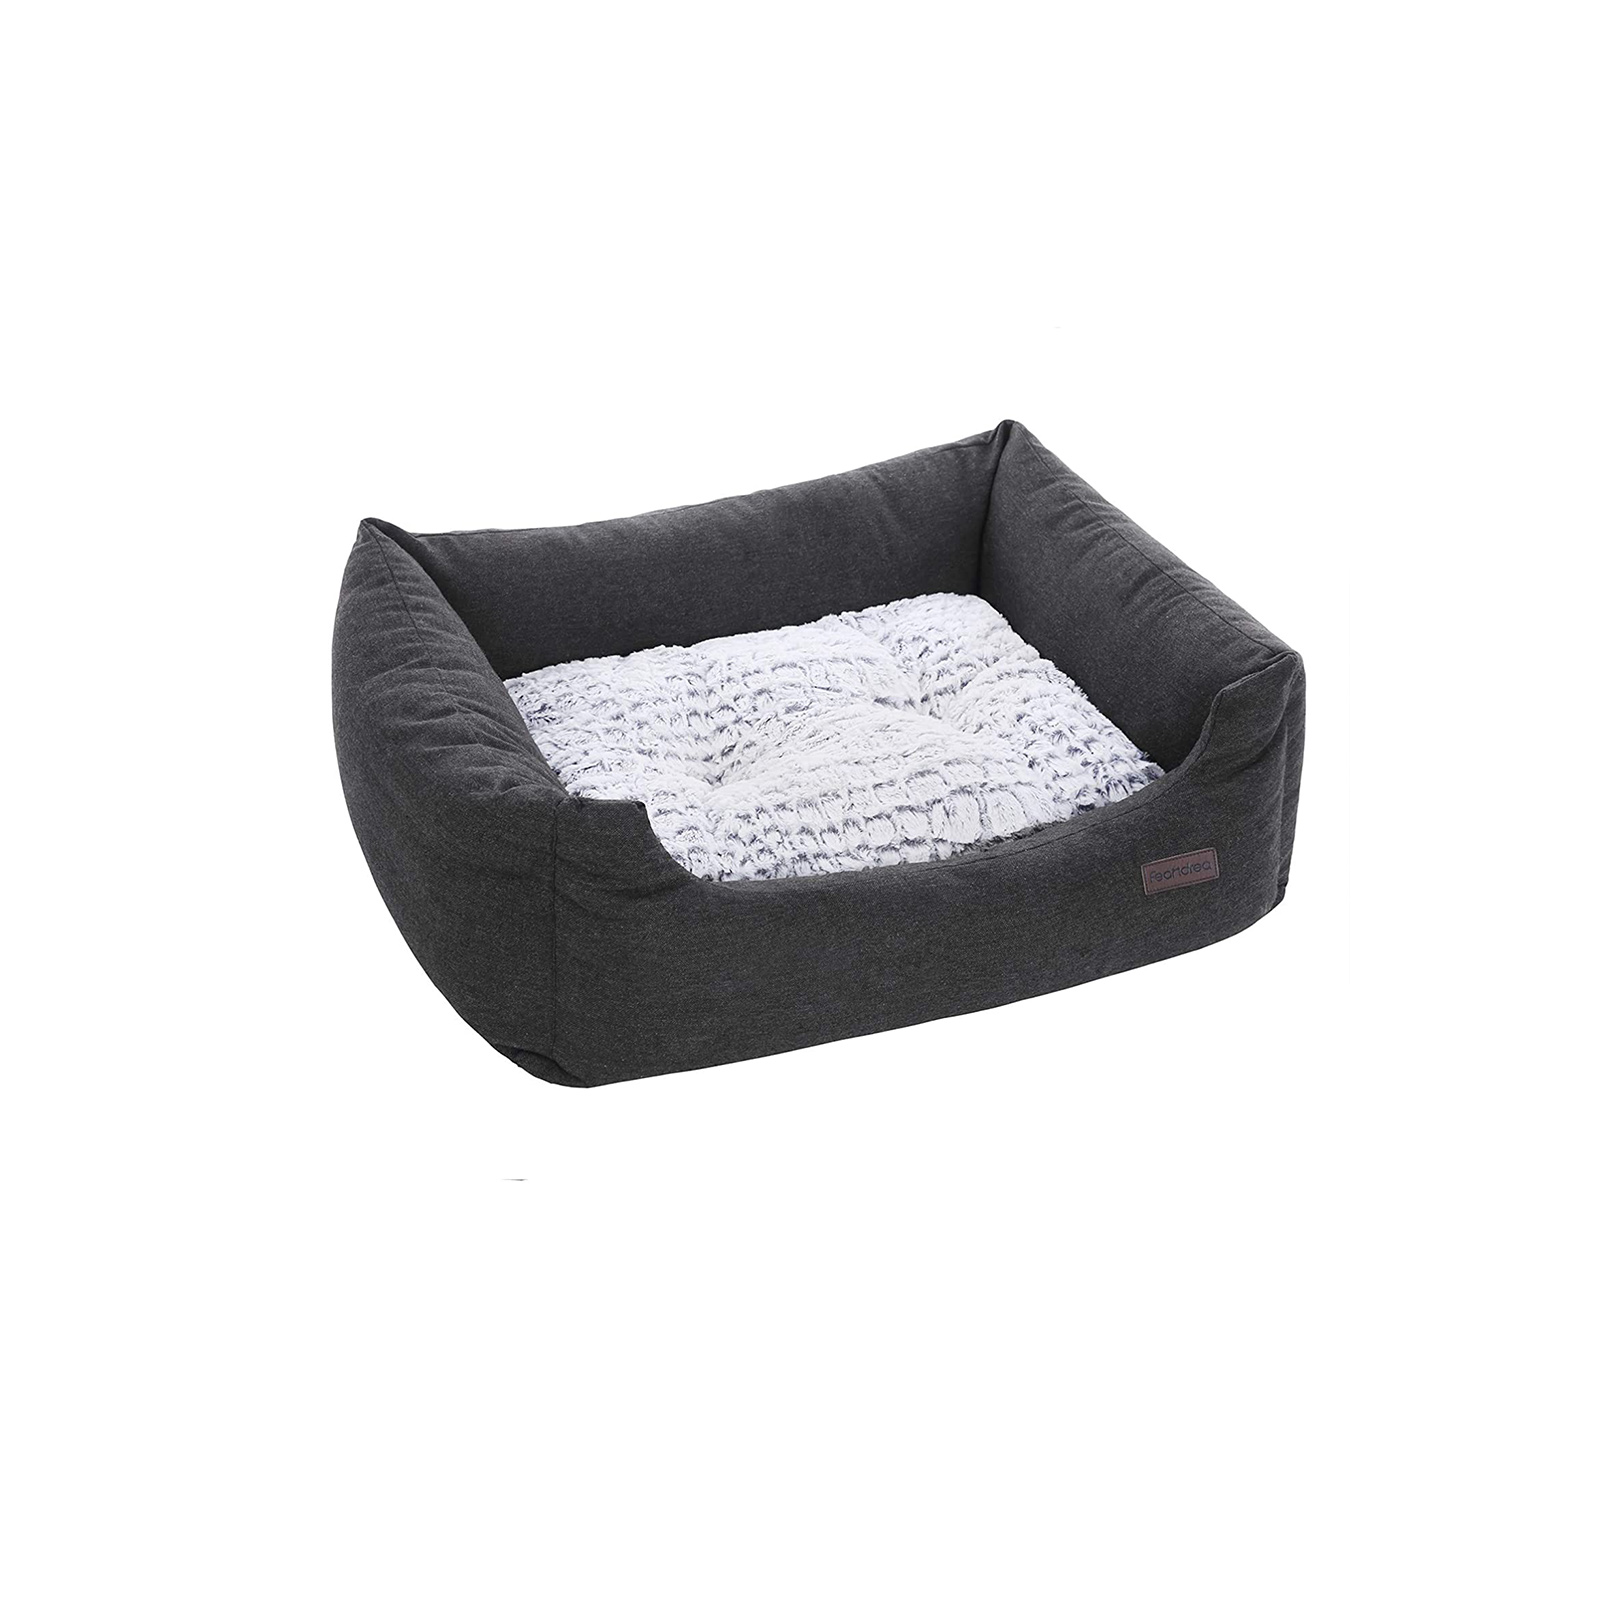 FEANDREA 80x60x26cm Dog Bed